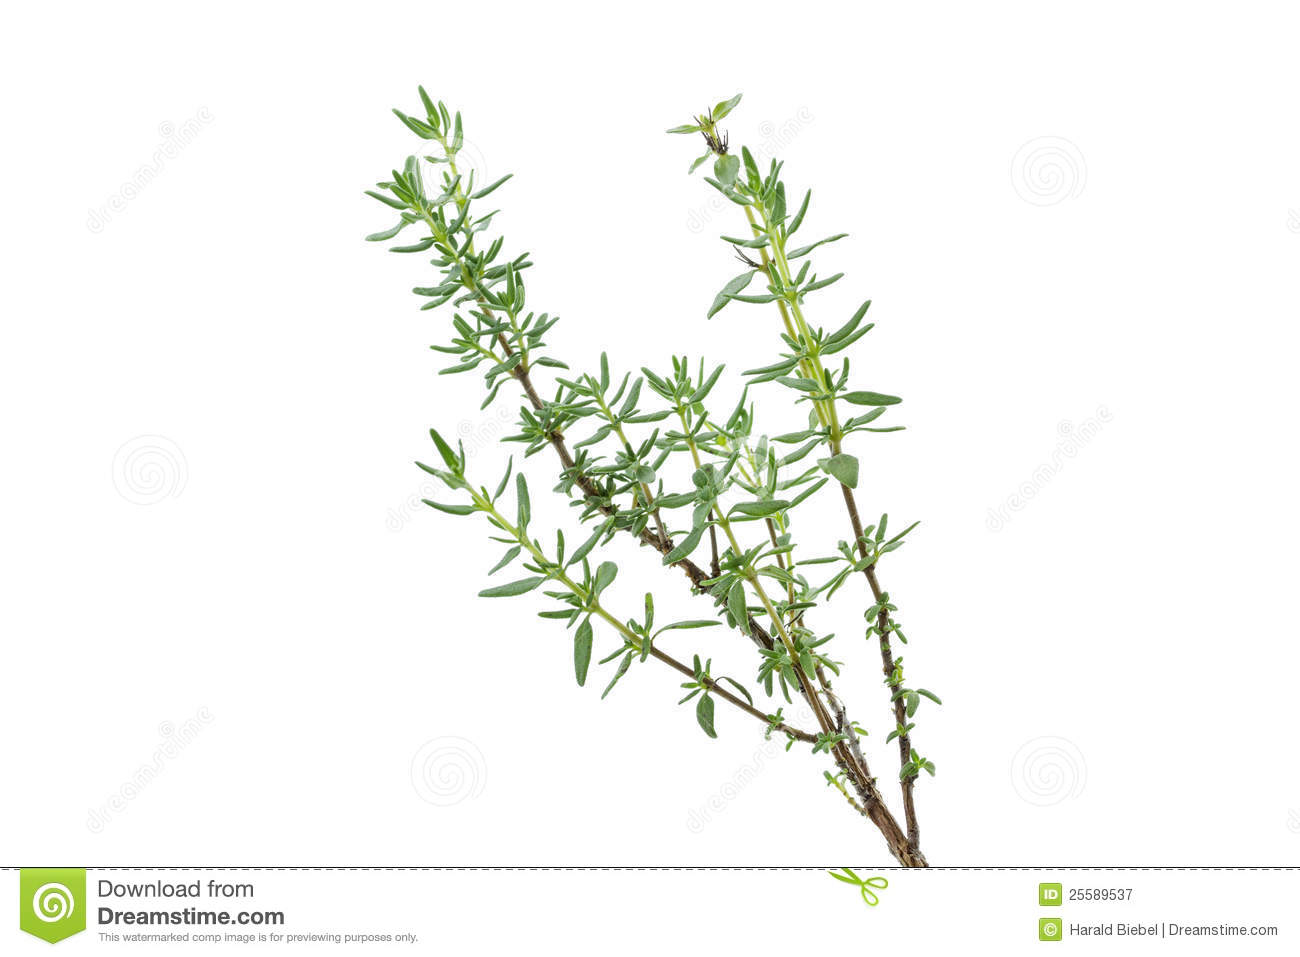 Fresh Thyme Herb Royalty Free Stock Photography - Image: 25589537: www.dreamstime.com/royalty-free-stock-photography-fresh-thyme-herb...